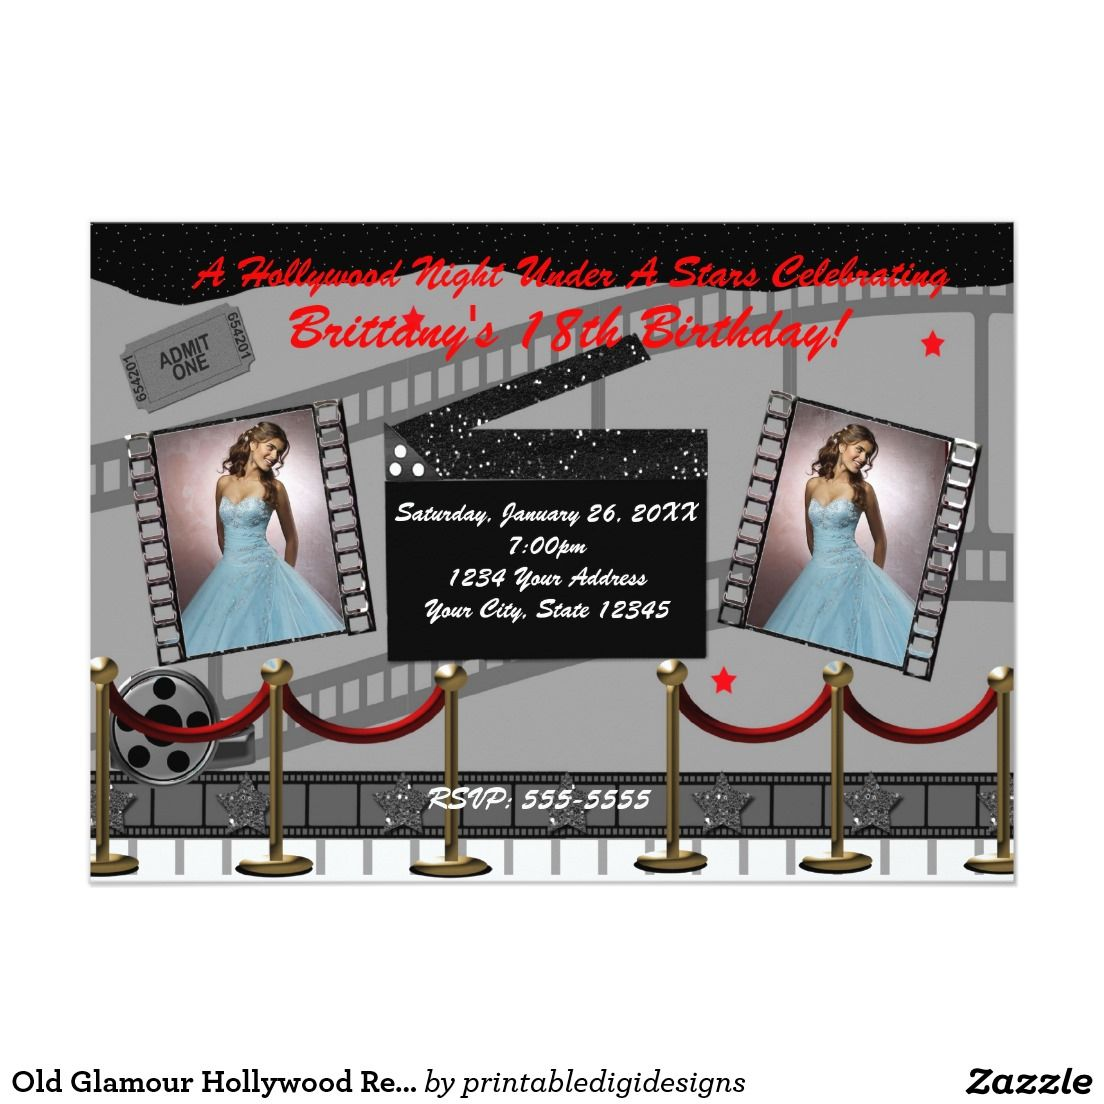 Roter Teppich Tickets Alte Roter Teppich Film Einladung Glamourhollywood